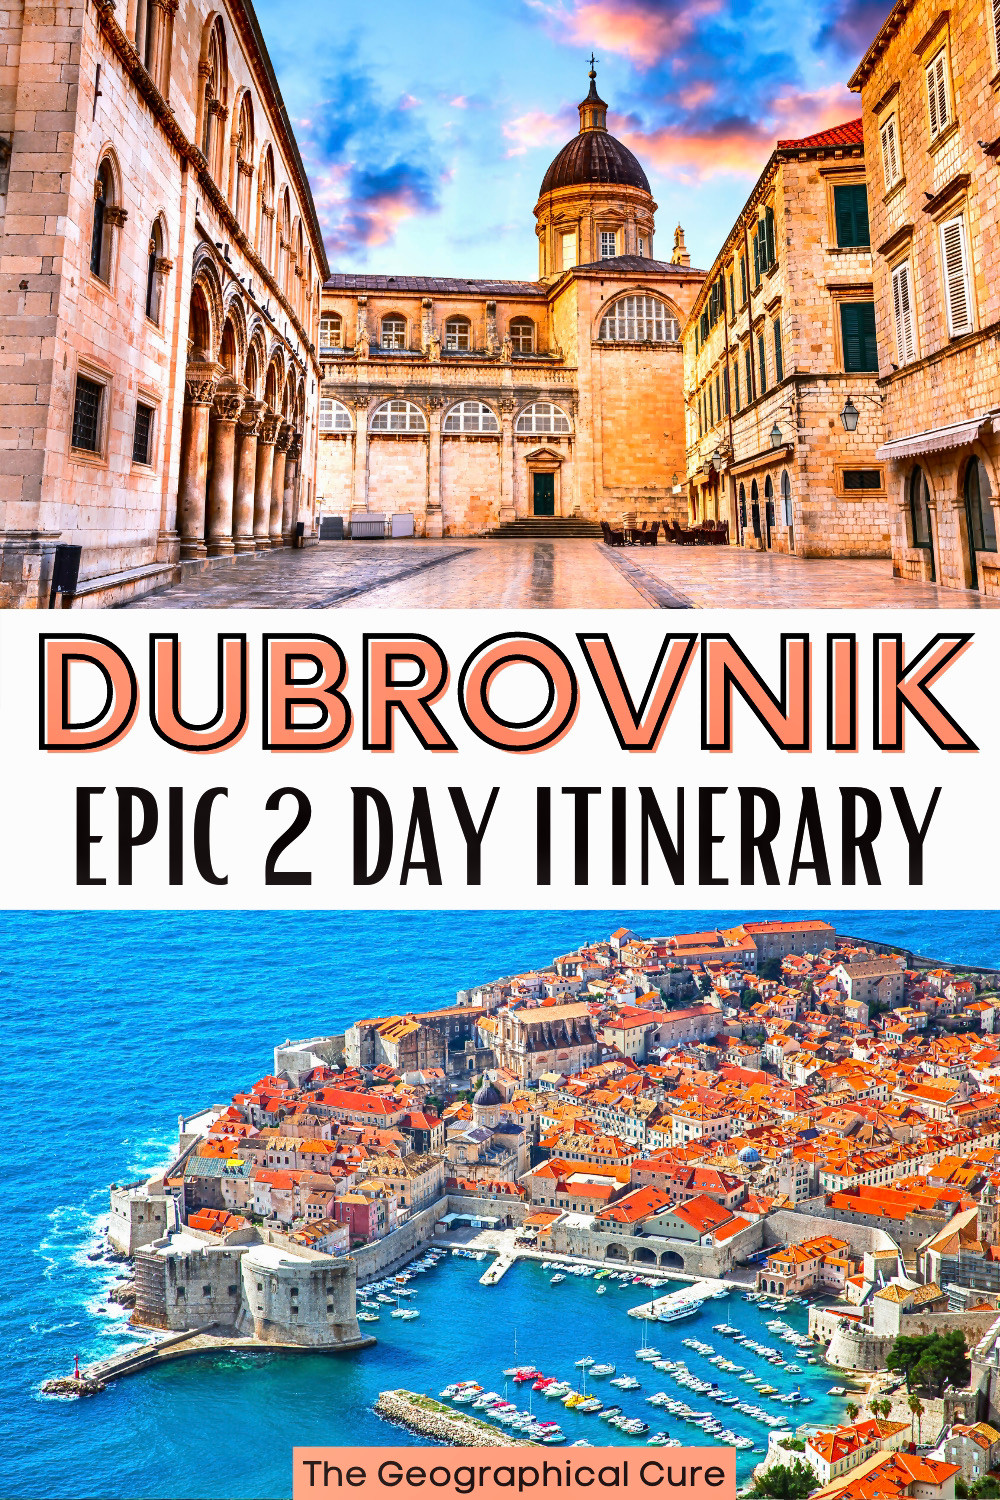 the perfect two day itinerary for Dubrovnik, with all the best things to see and do